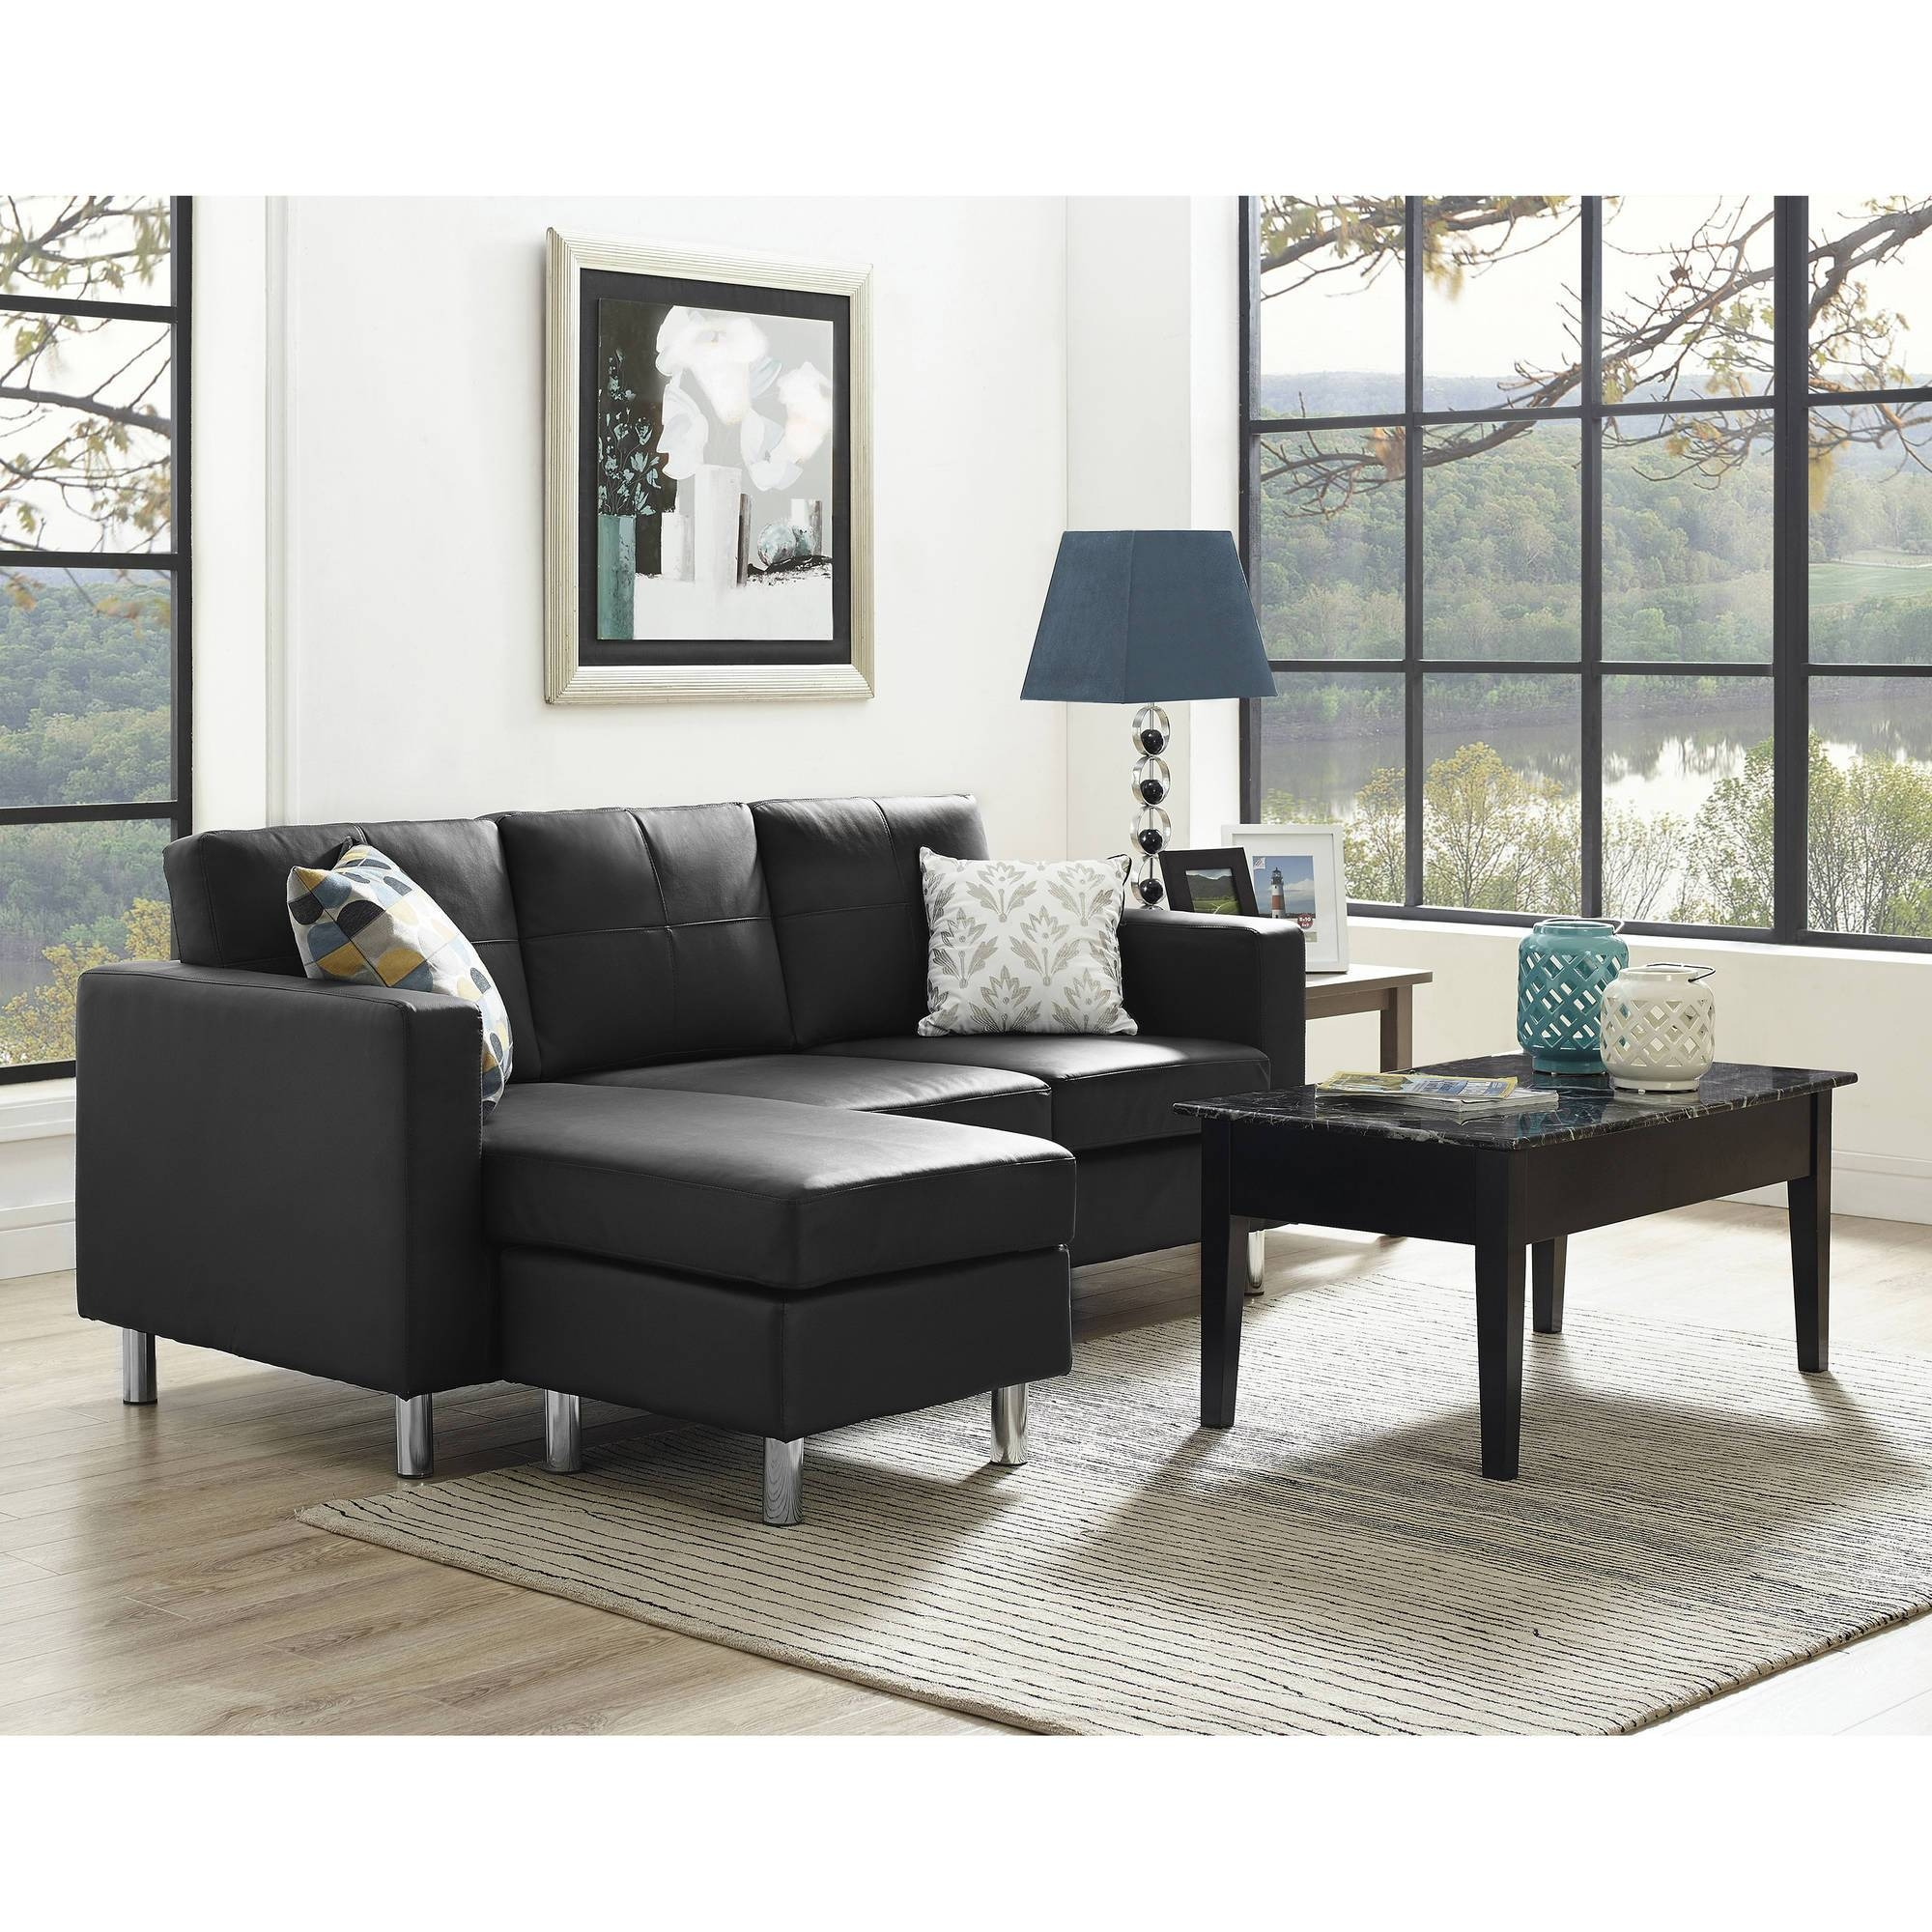 Dorel Living Small Spaces Configurable Sectional Sofa, Multiple regarding Mini Sectional Sofas (Image 8 of 30)